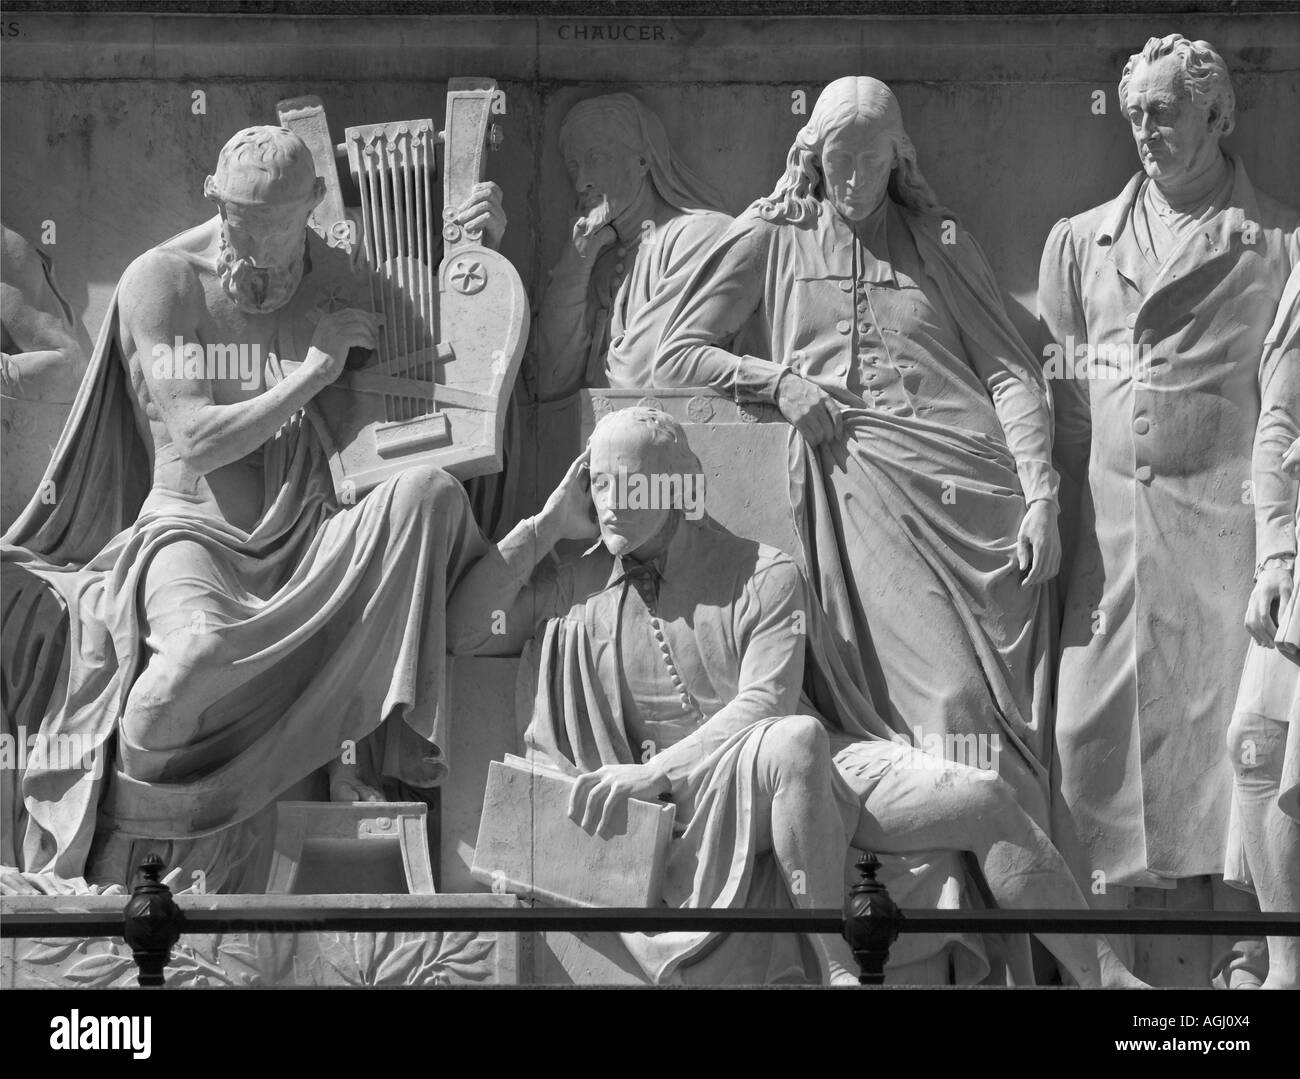 William Shakespeare sits next to Homer on the frieze of the Albert Memorial London Stock Photo